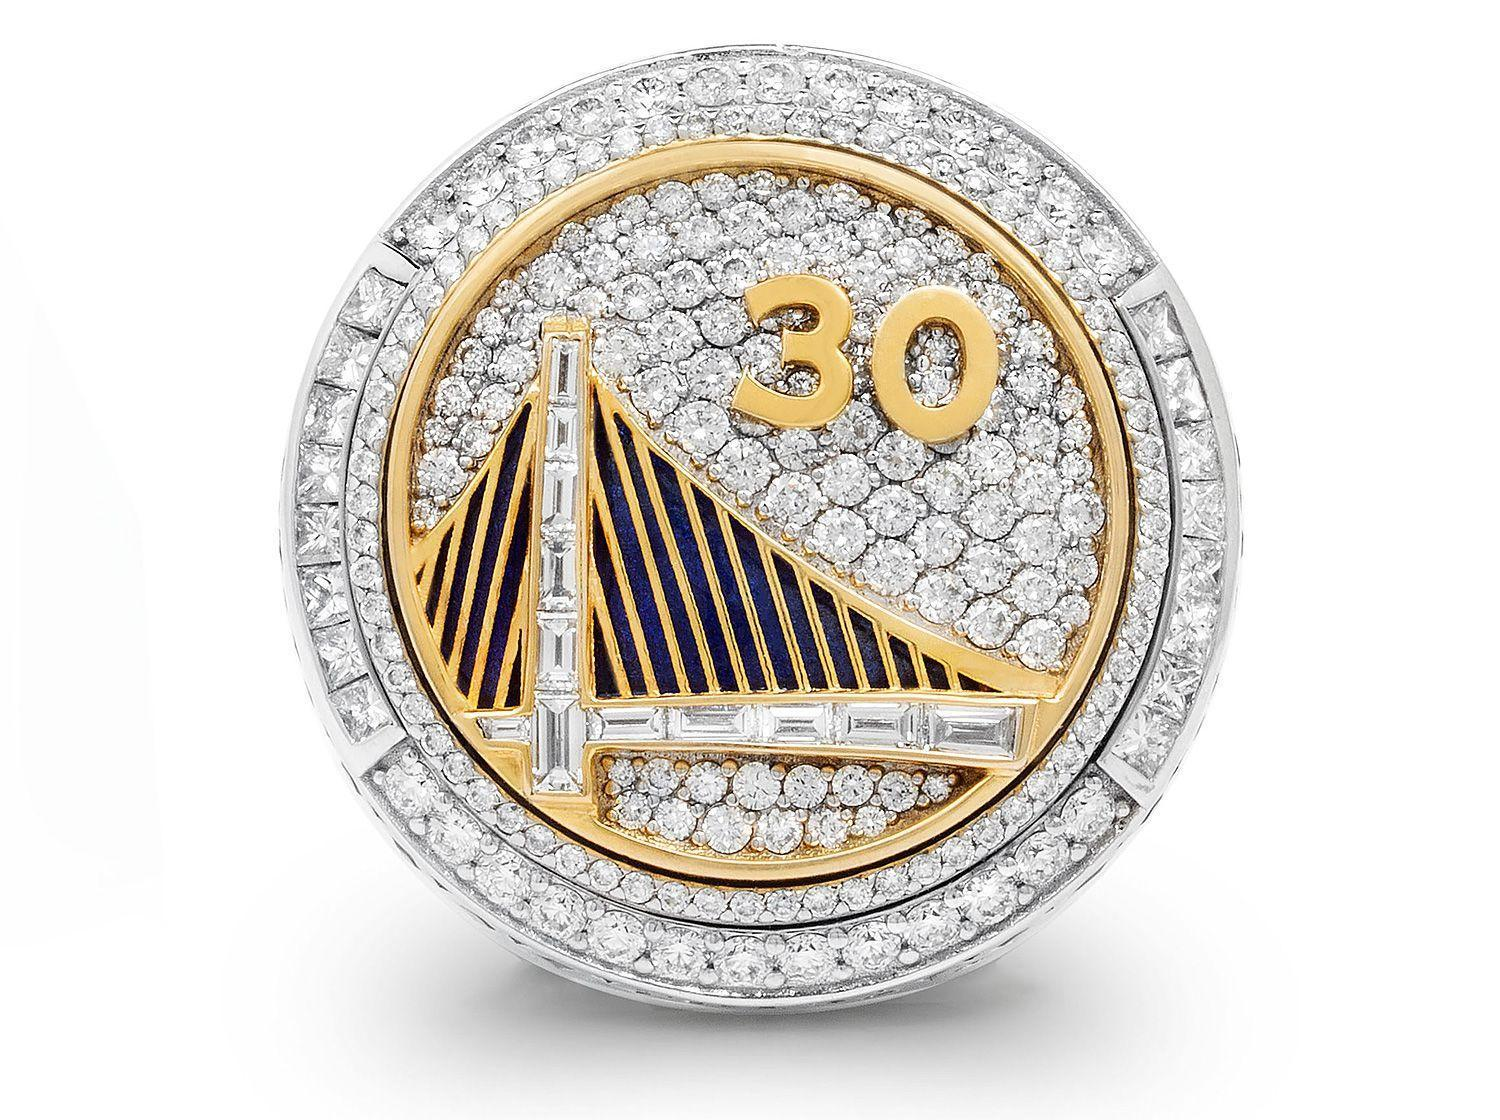 Warriors Championship Rings